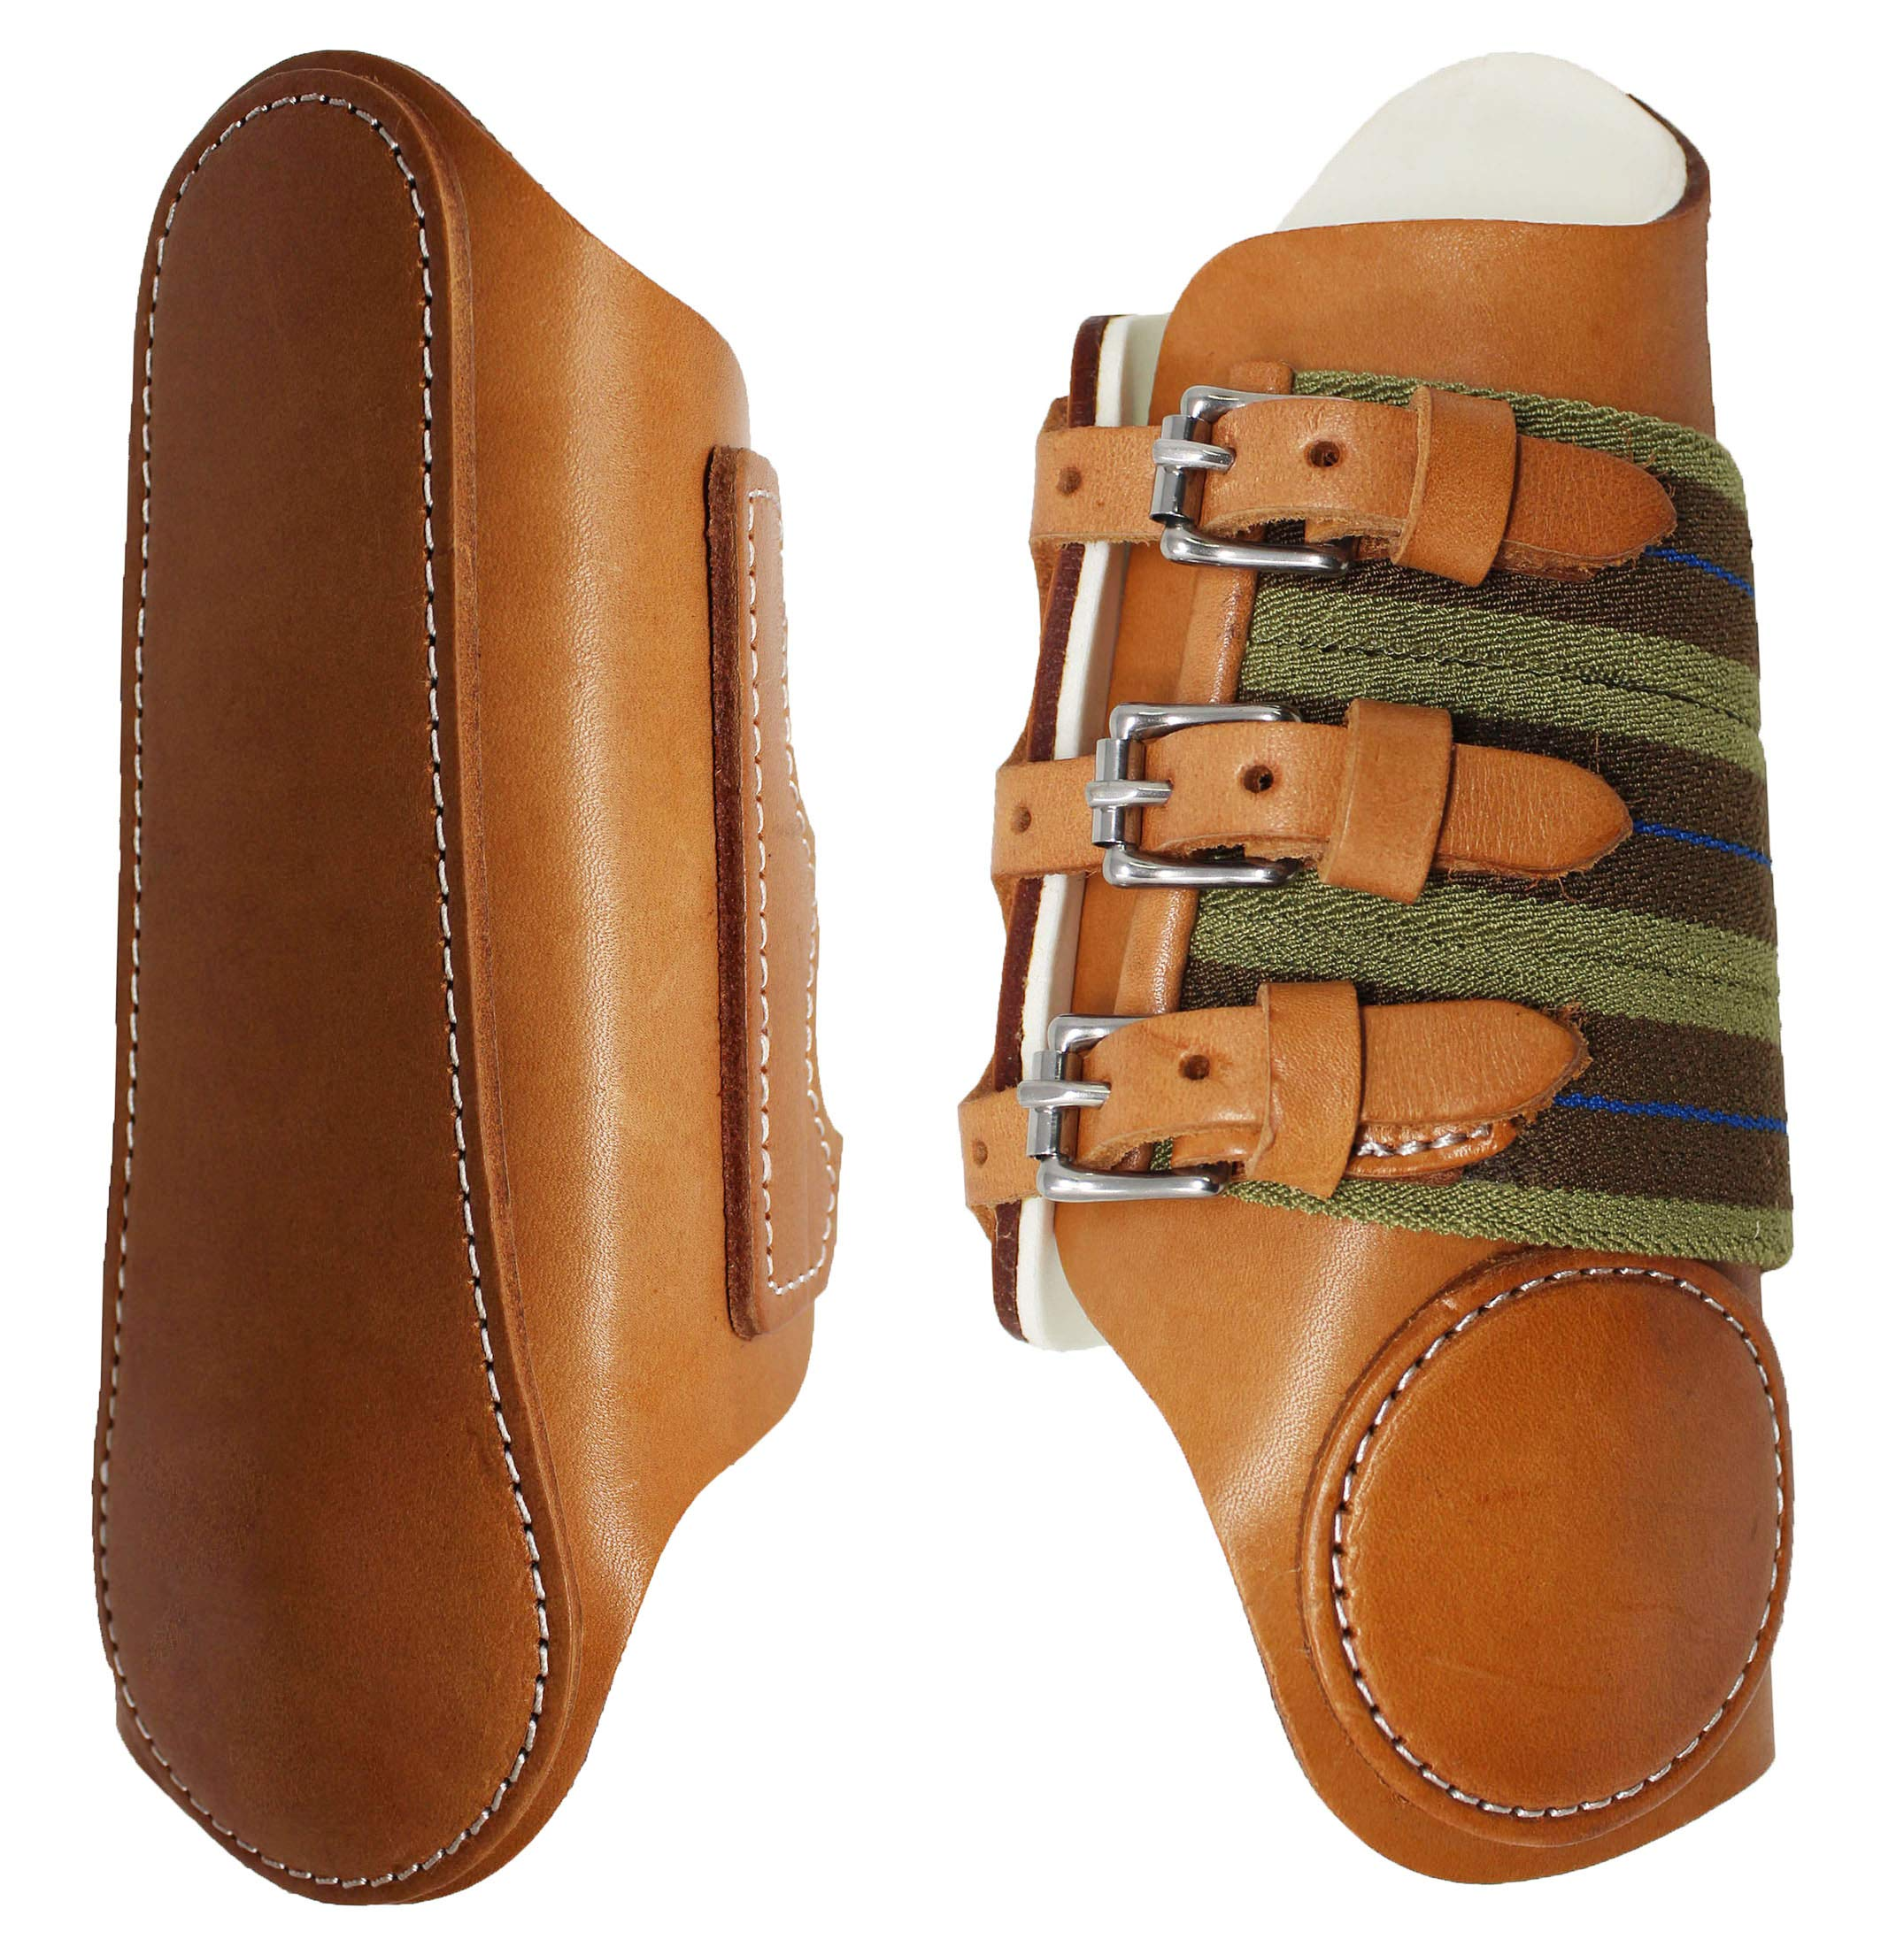 Professional Equine Horse Medium Leather Horse Sports Medicine Splint Boots Amish Made in USA Tack 4102